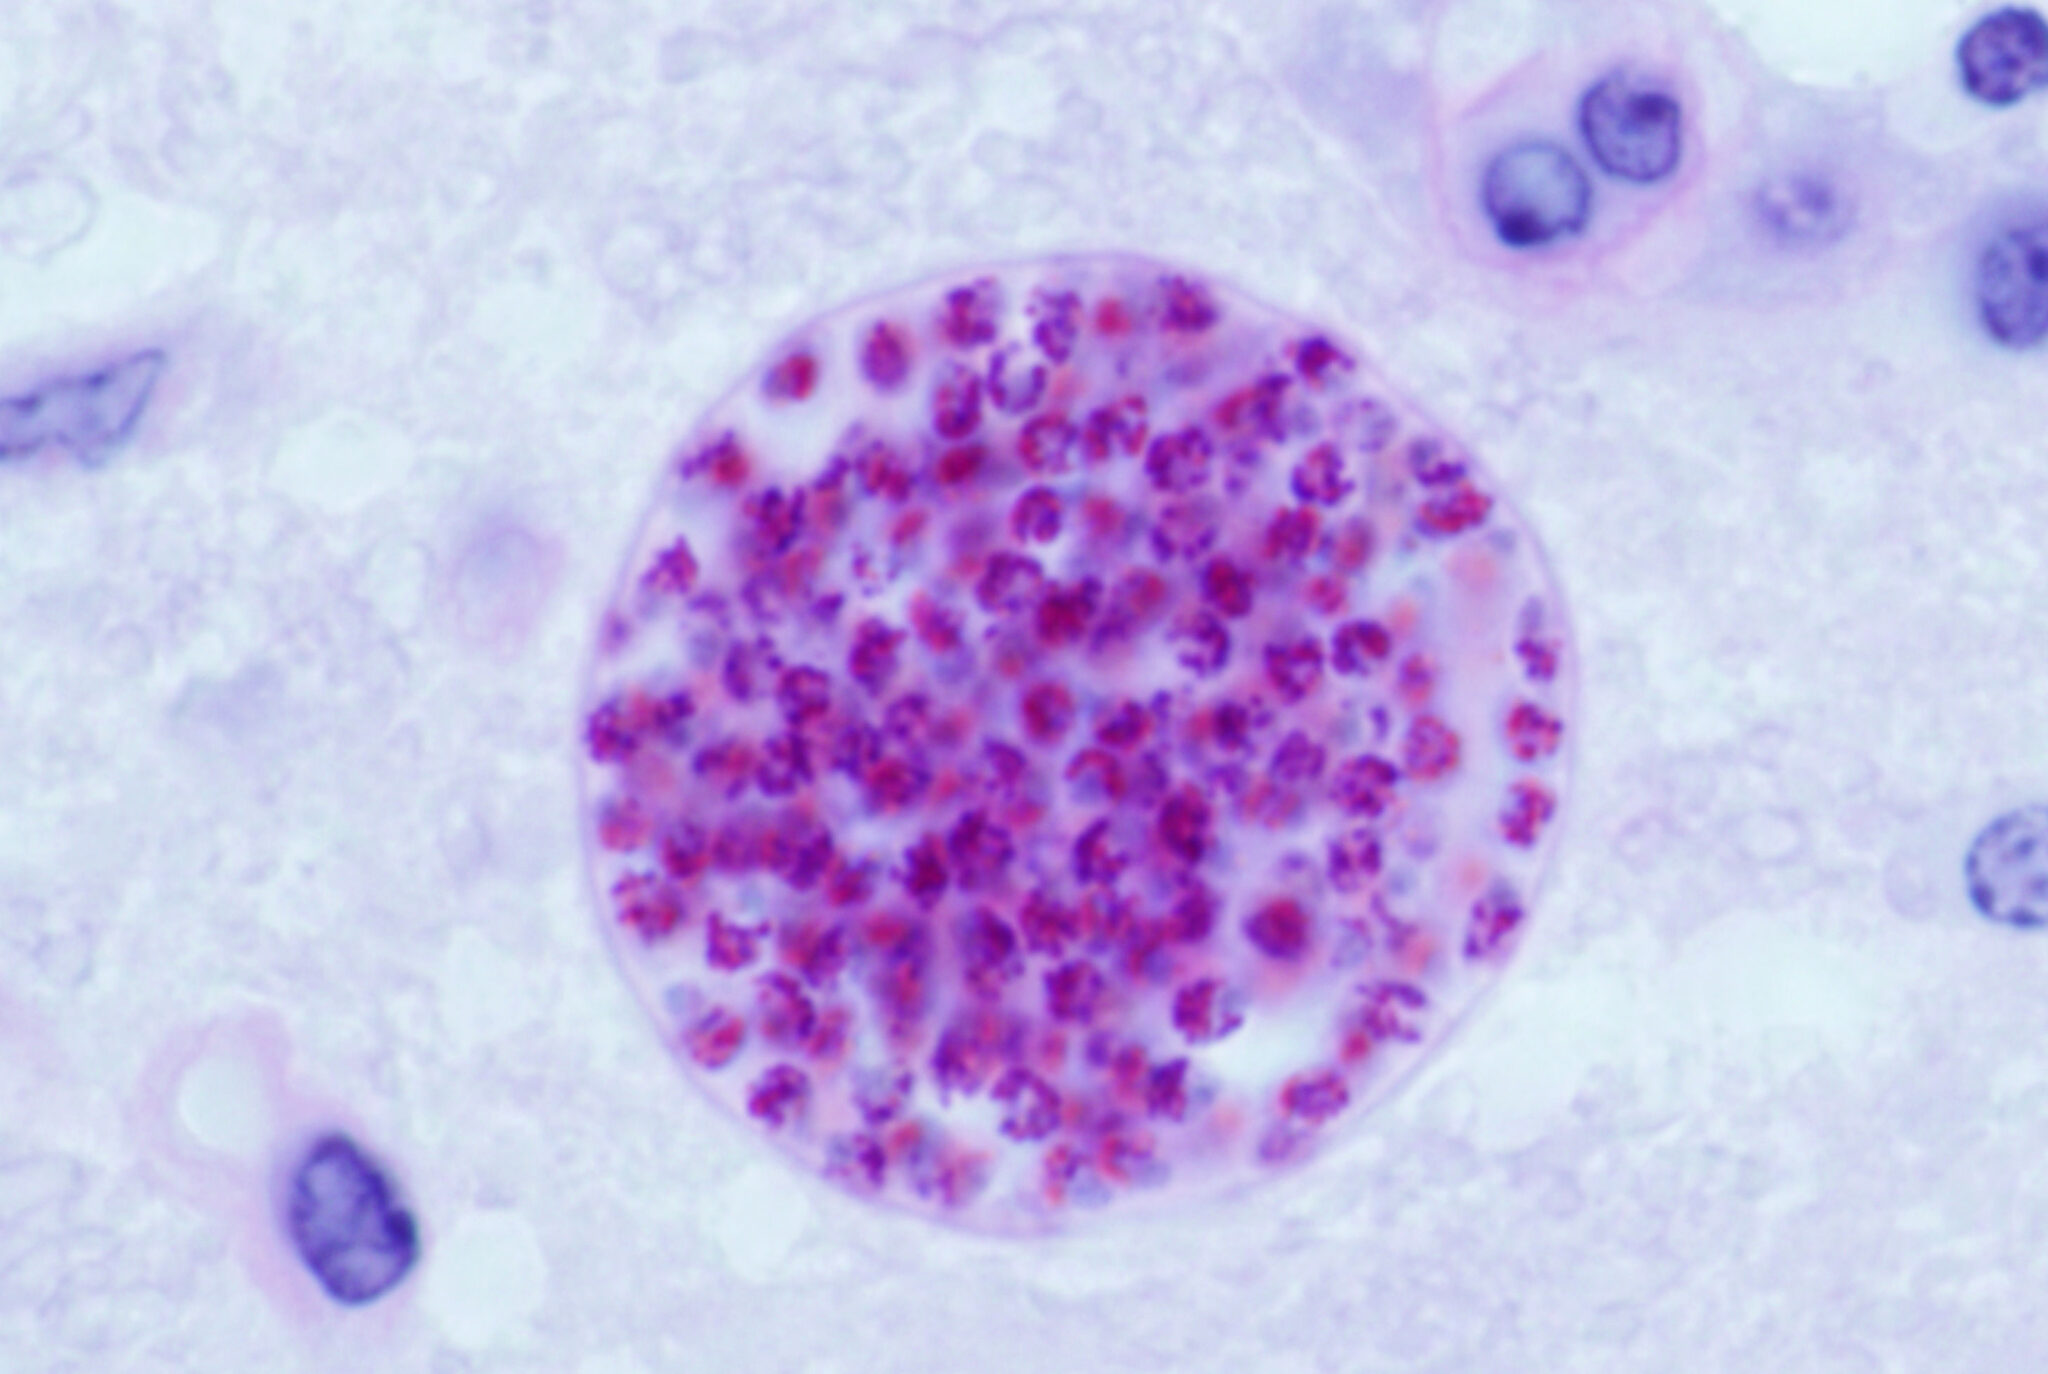 Toxoplasma Gondi Infection in Mice Essay